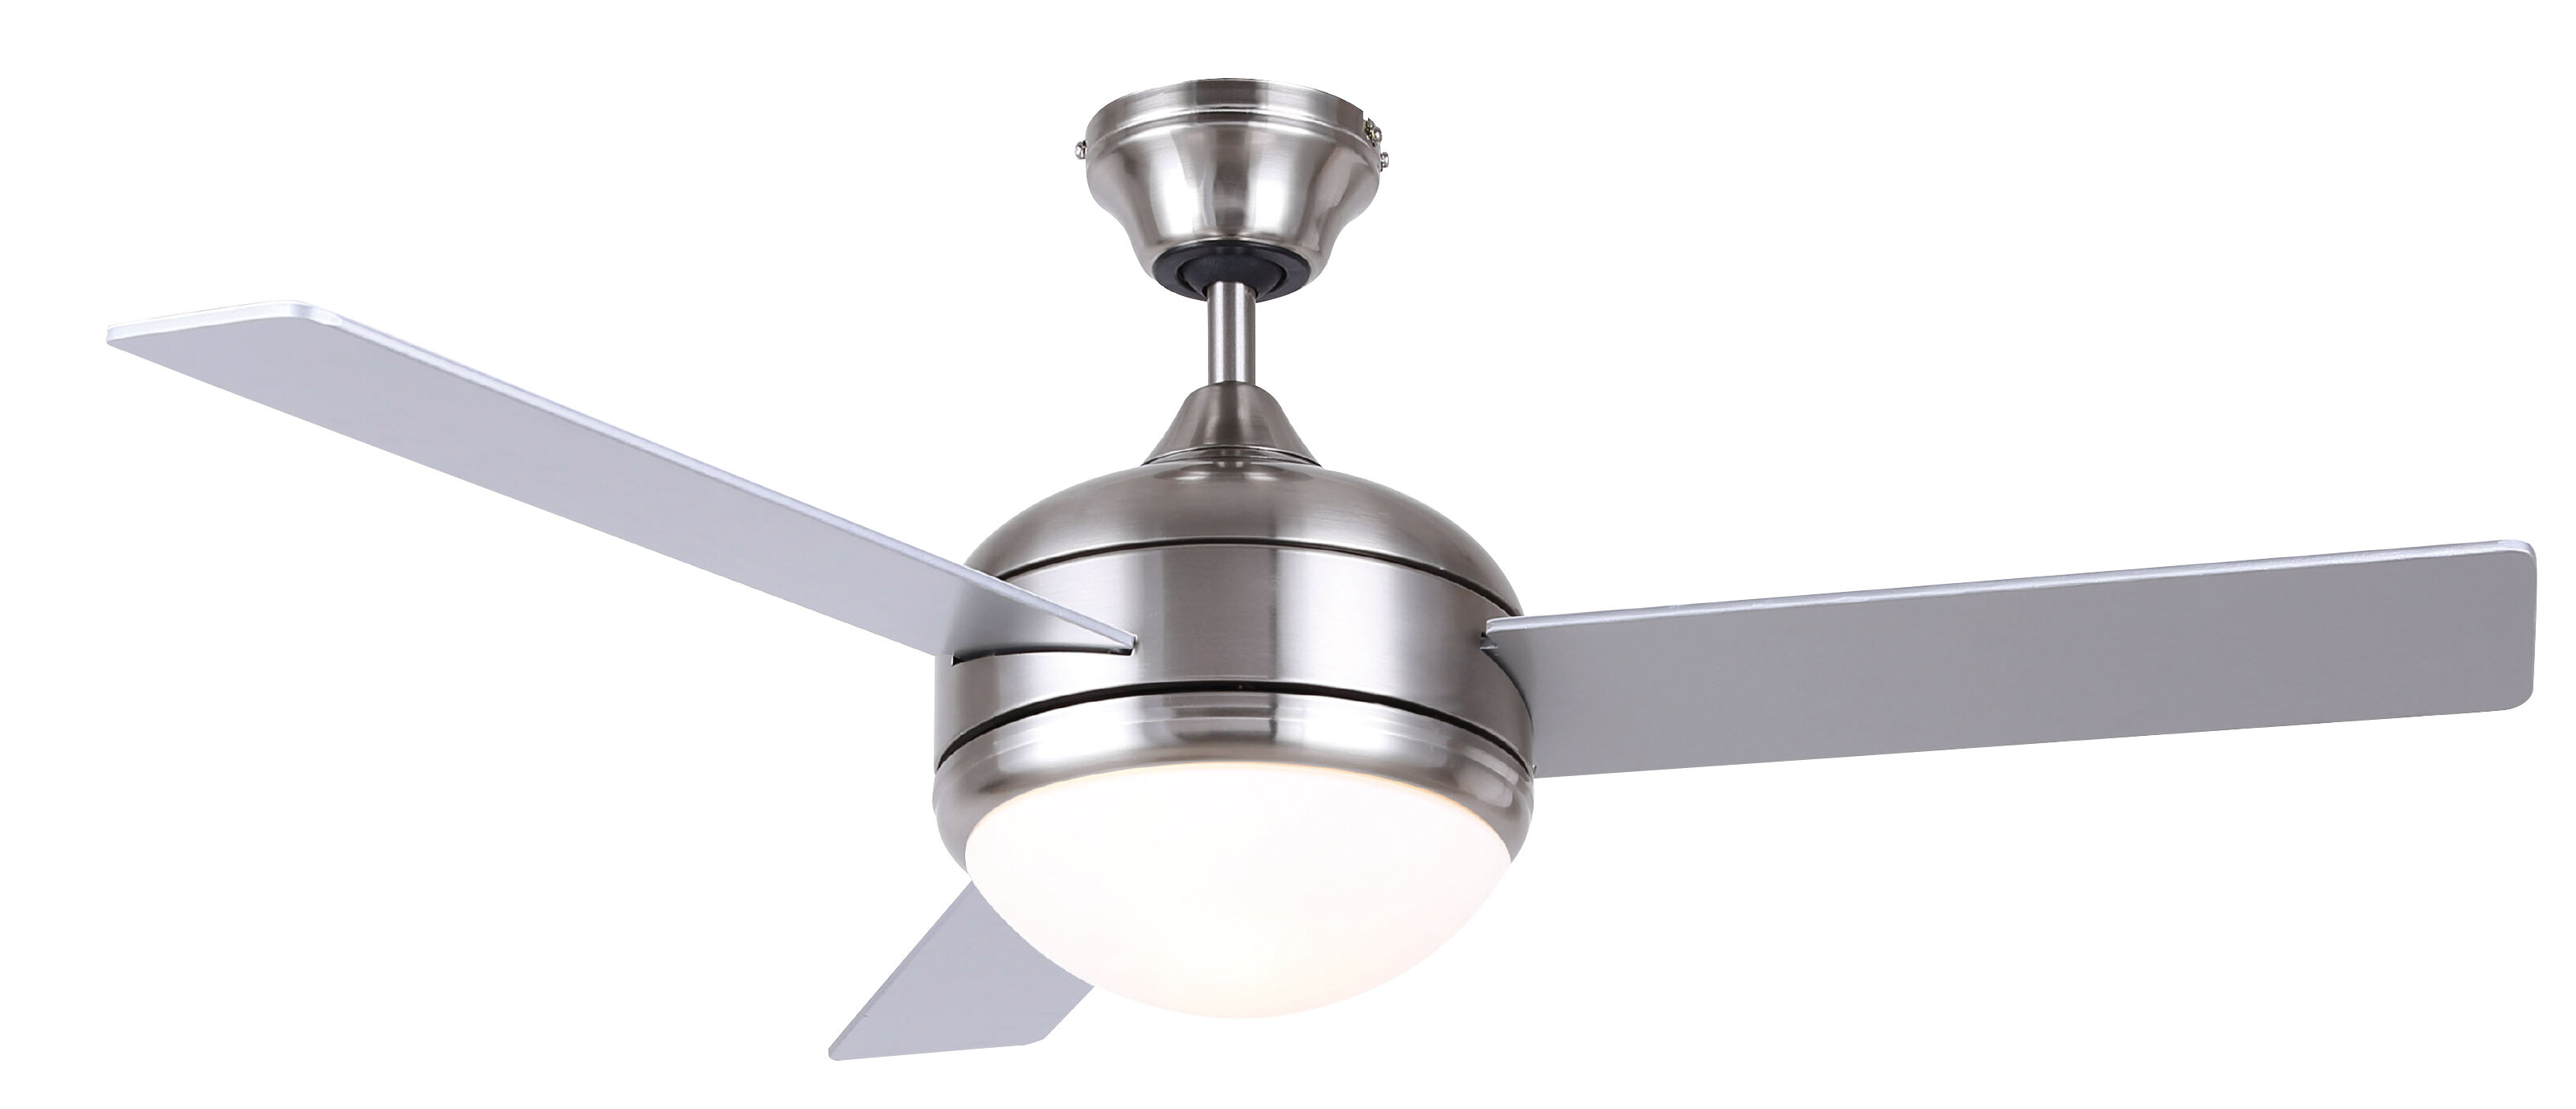 48 Dennis 3 Blade Ceiling Fan With